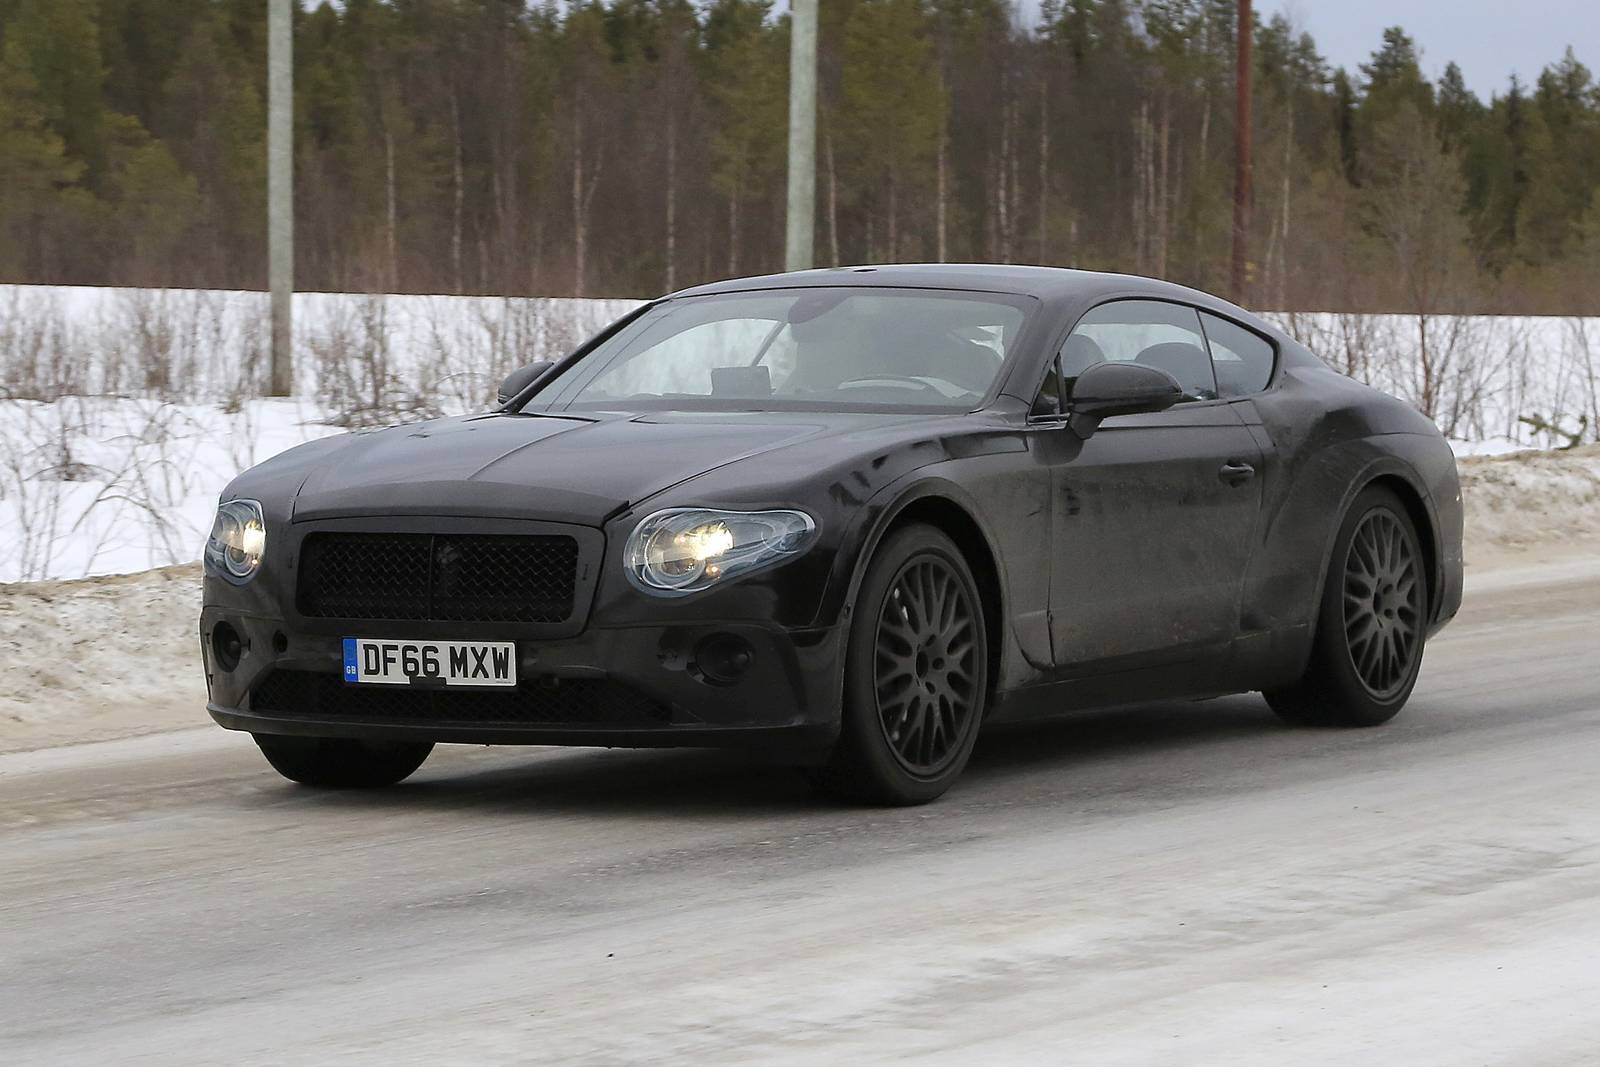 2019 bentley continental gt latest spy shots less camo gtspirit. Black Bedroom Furniture Sets. Home Design Ideas